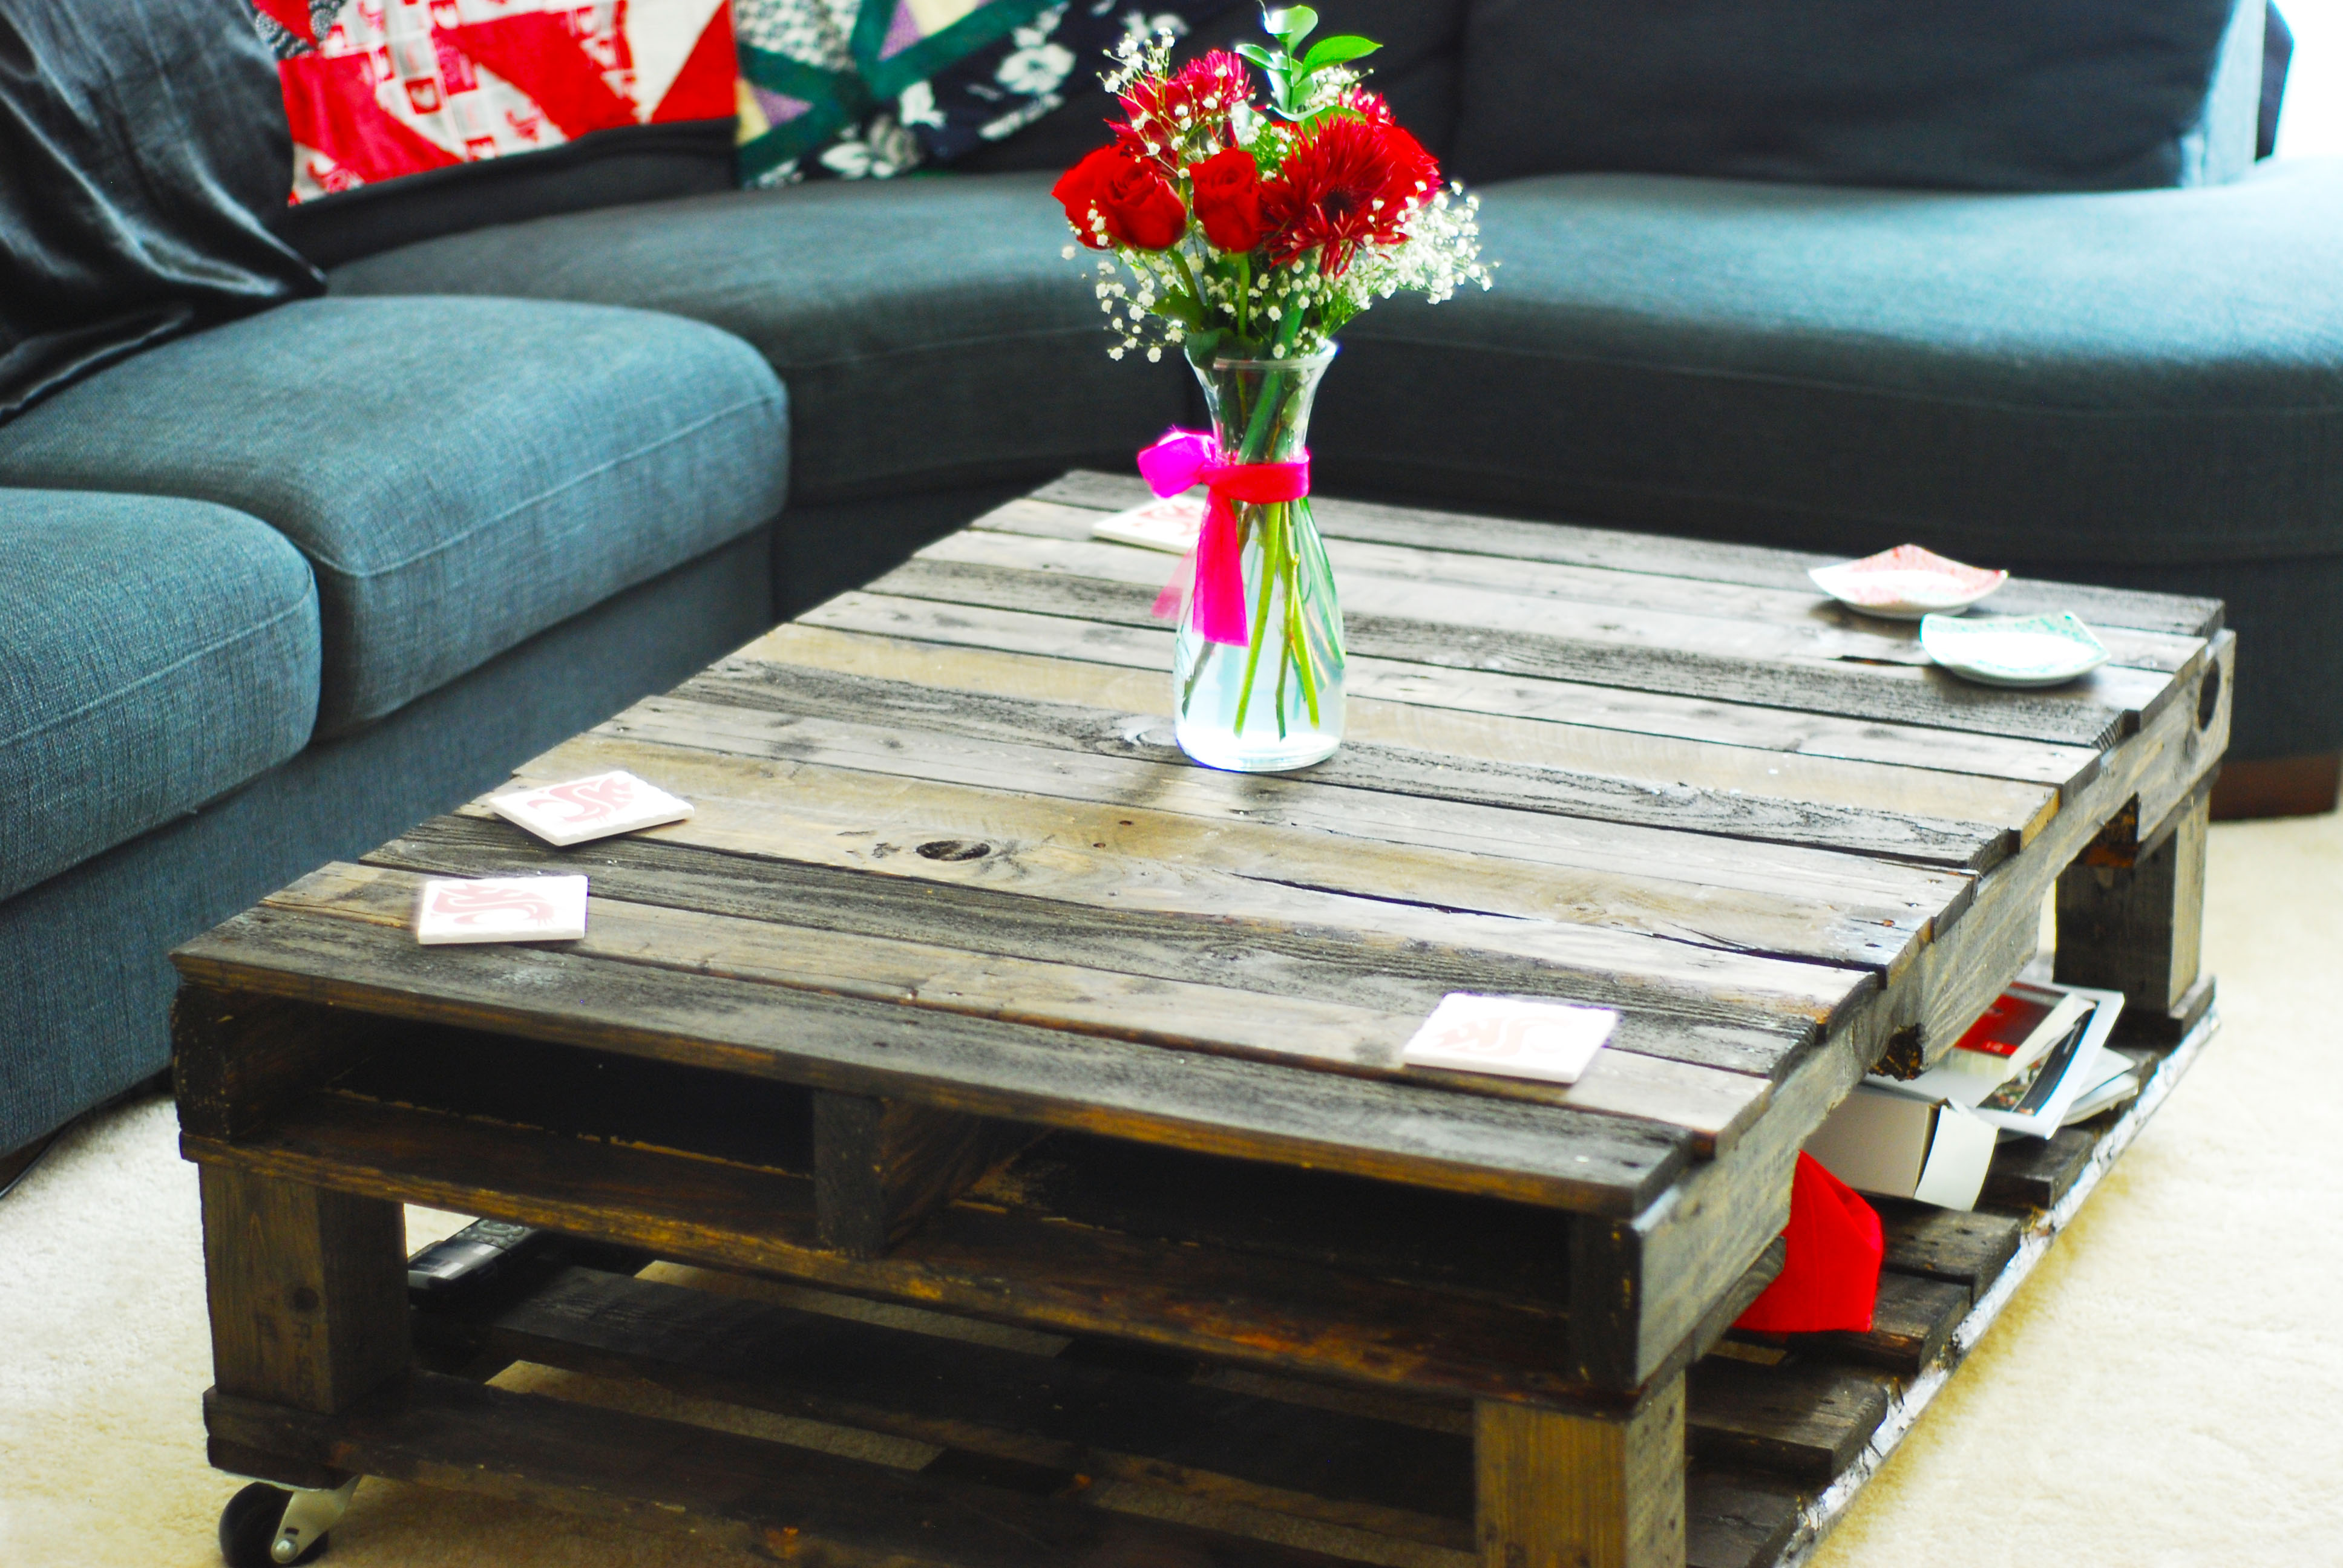 furniture-ideas-from-wood-pallet-project-ideas-for-great-diy-idea-with-pallet-coffee-tablewith-storage-also-bottom-shelves-and-distressed-teak-wood-pallet-jacks